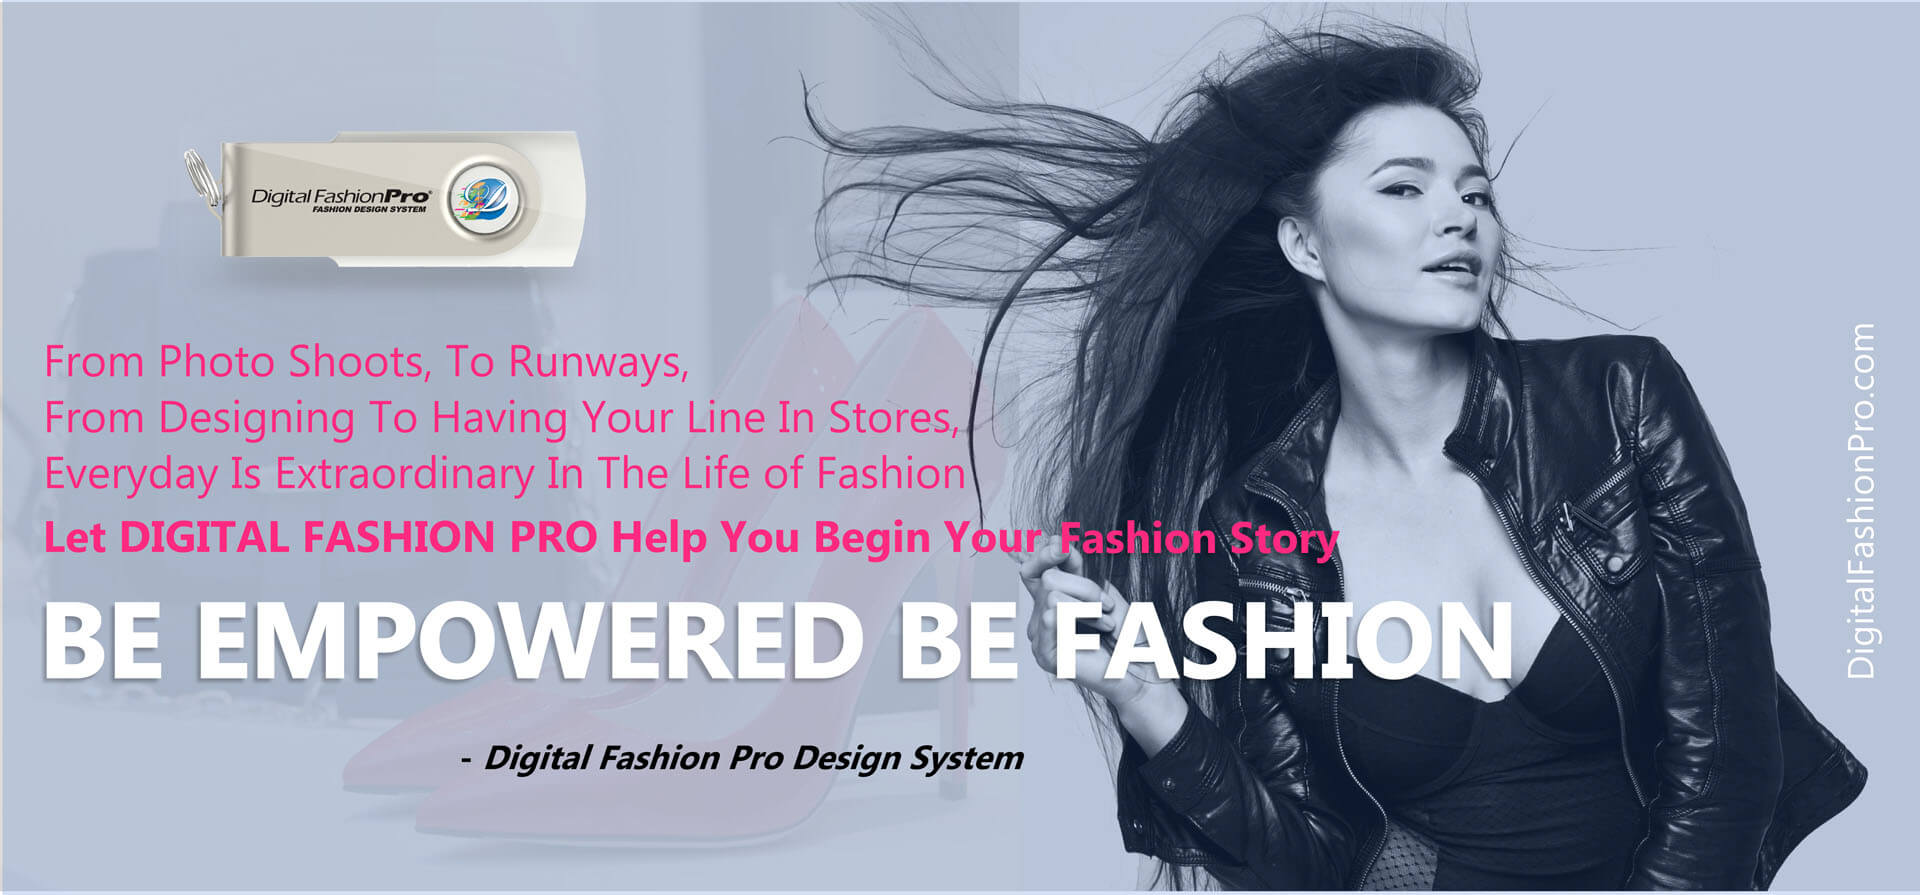 Be Empowered Be Fashion - With Digital Fashion Pro Design System